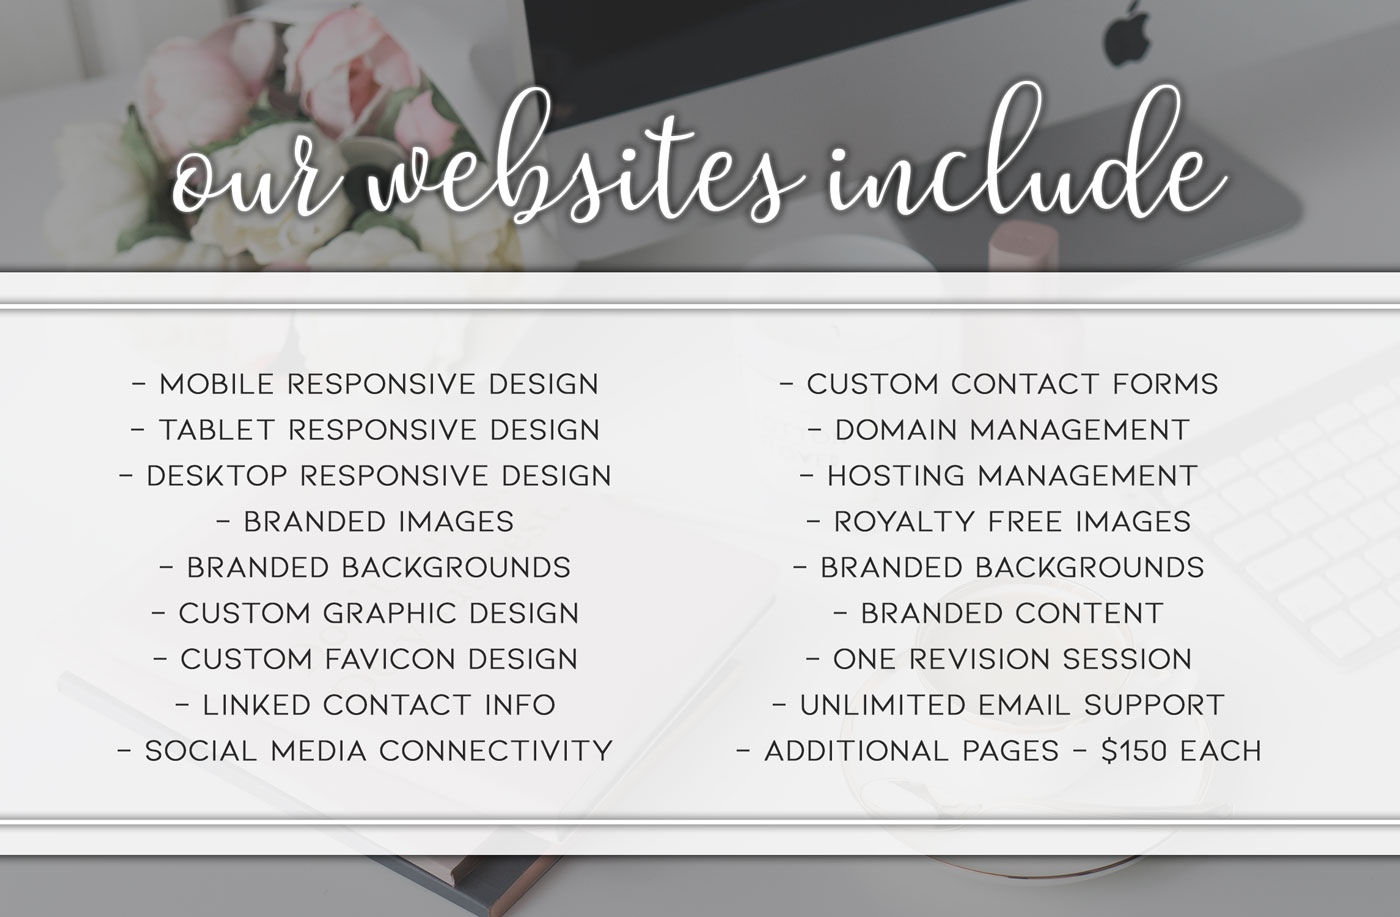 Website Designs Include these Services